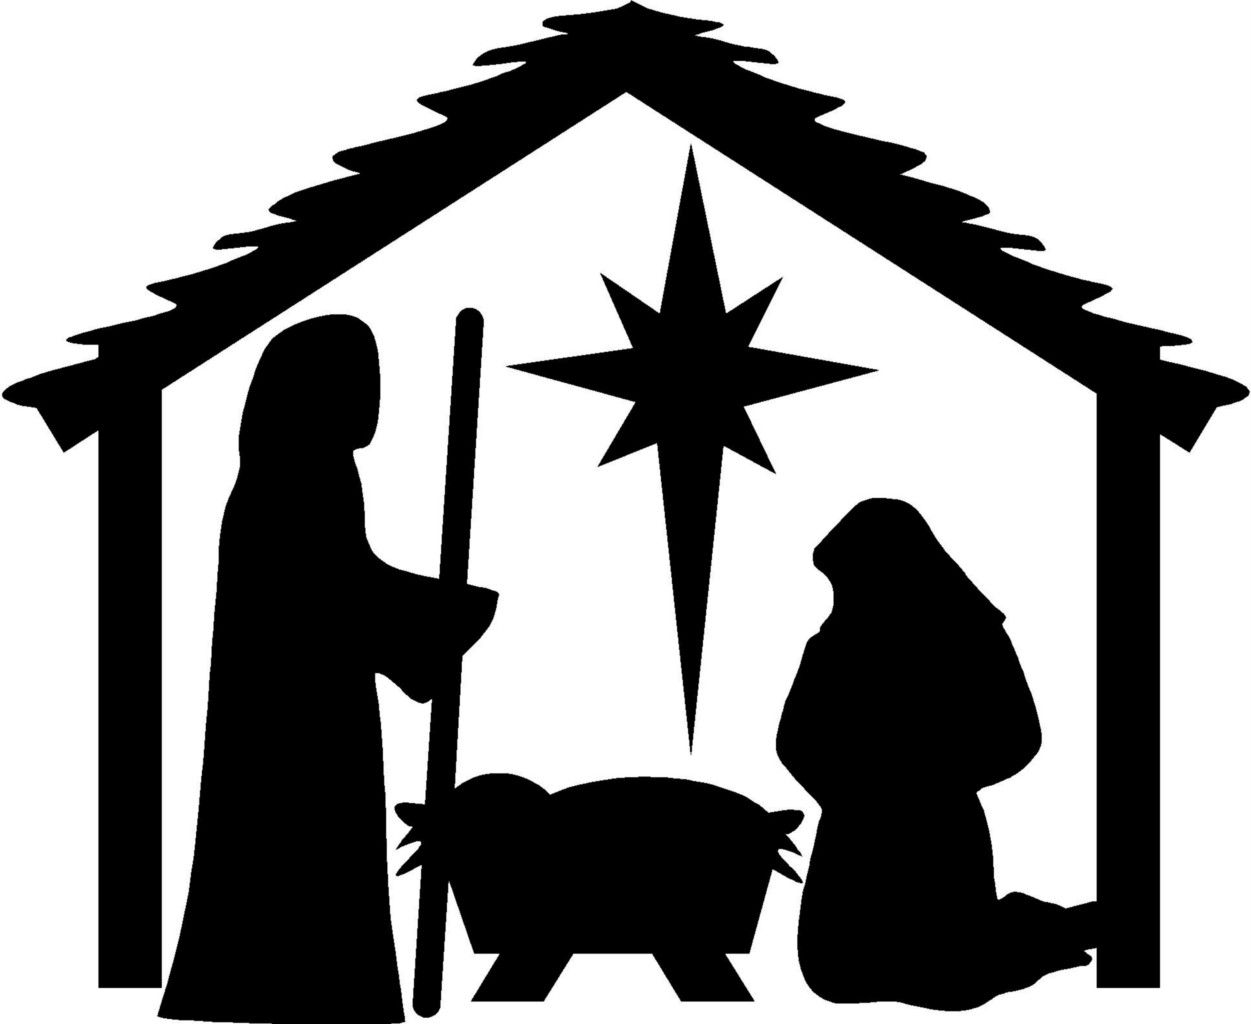 Nativity scene clipart silhouette graphic royalty free download manger scene coloring pages | Details about Nativity Christmas Wall ... graphic royalty free download